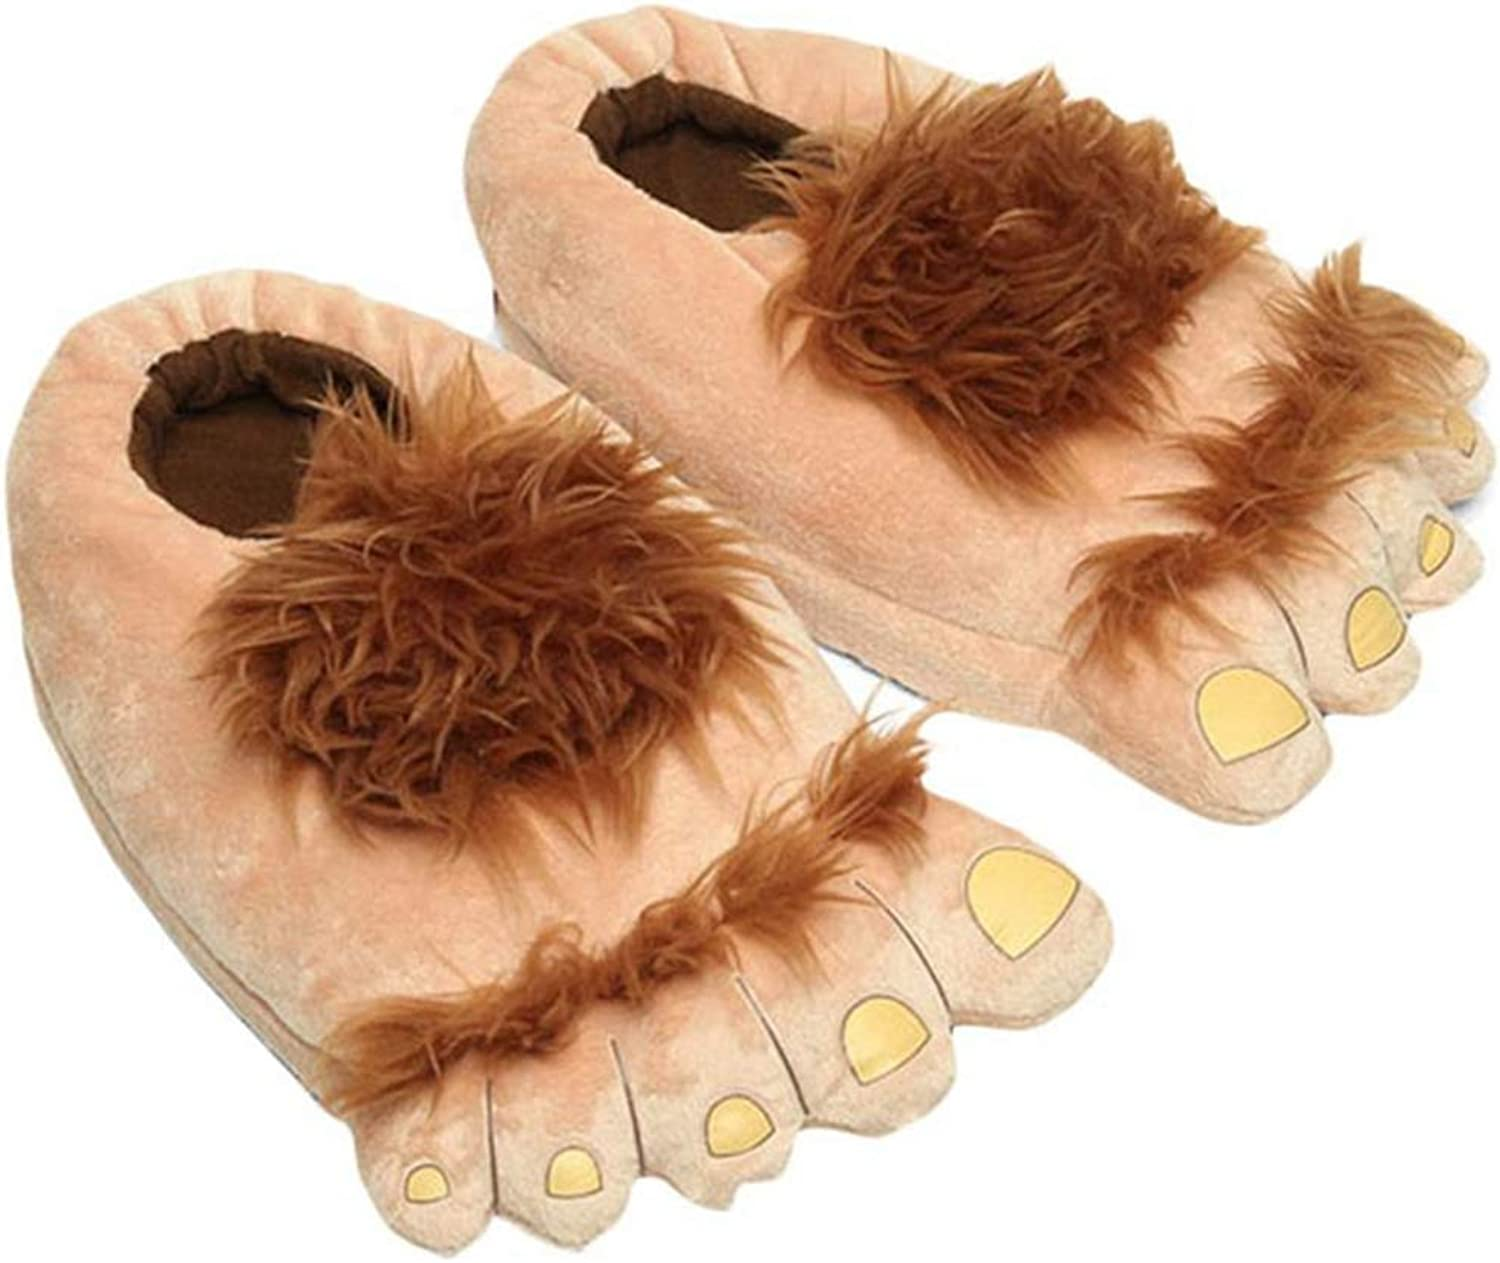 Women Men Plush Warm Slippers Big Feet Creative Men and Women Slippers Winter Home shoes Funny Home Soft shoes Cotton